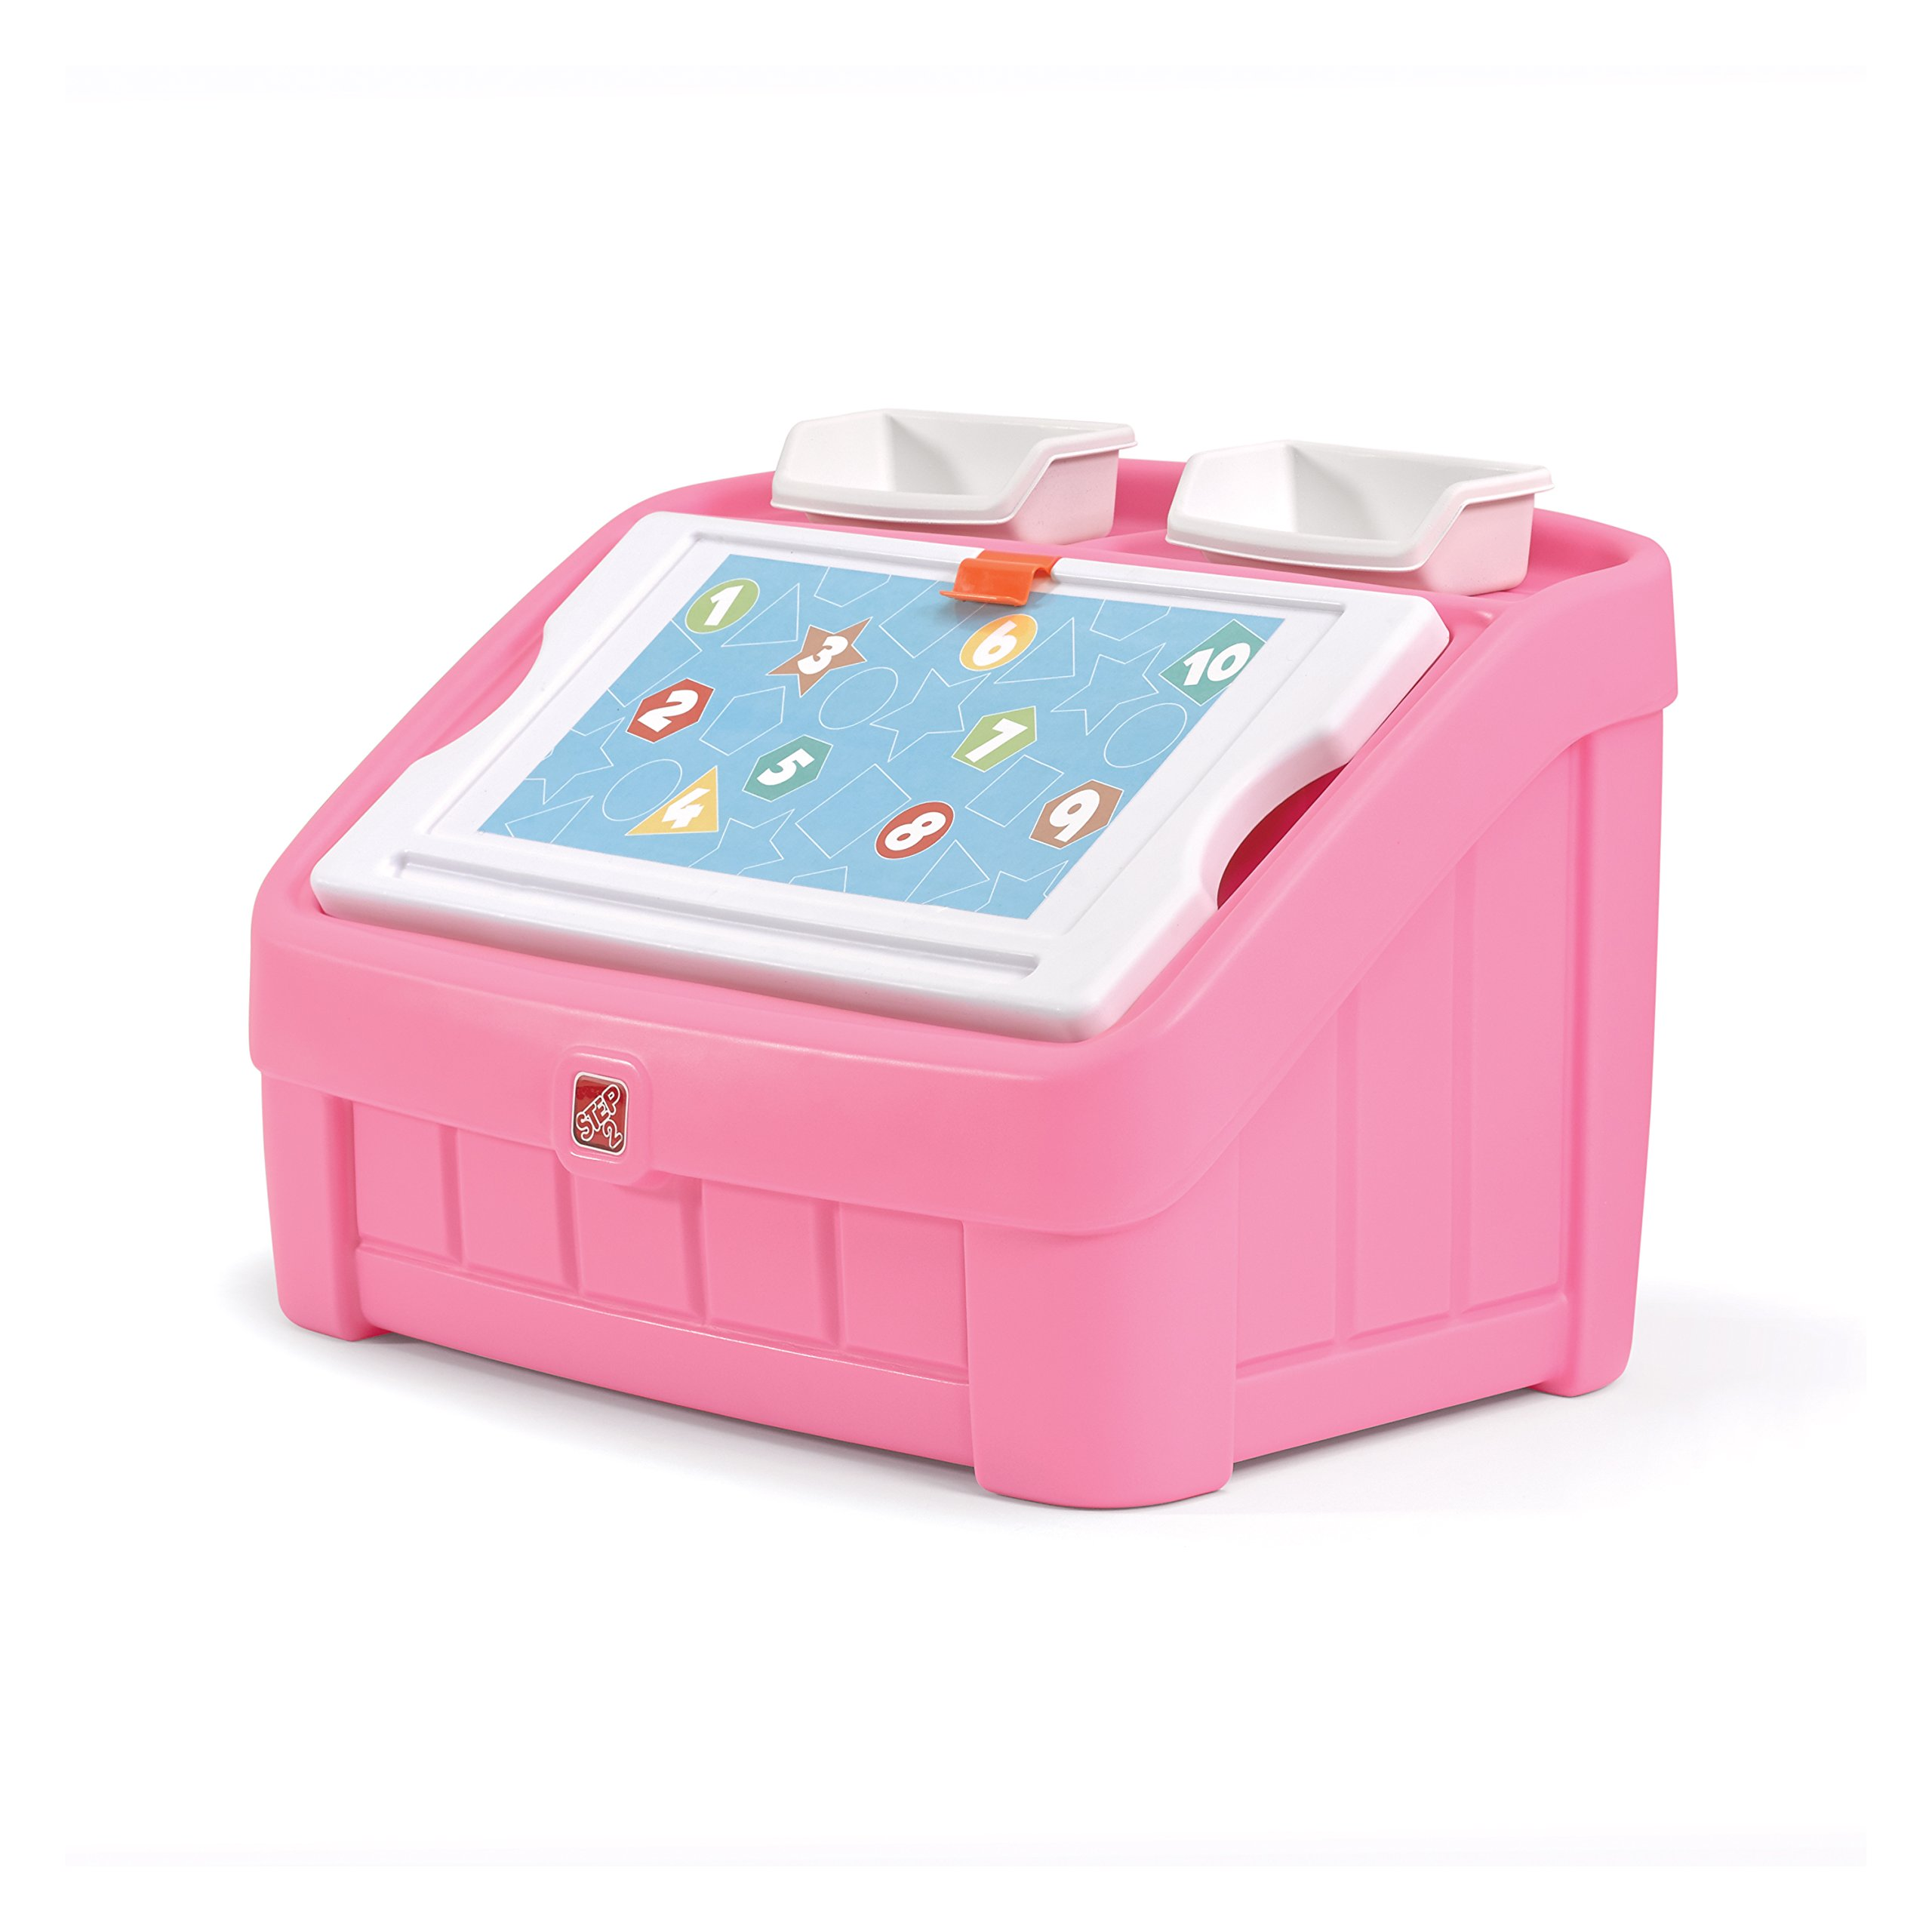 Step2 2-in-1 Toy Box and Art Lid, Pink by Step2